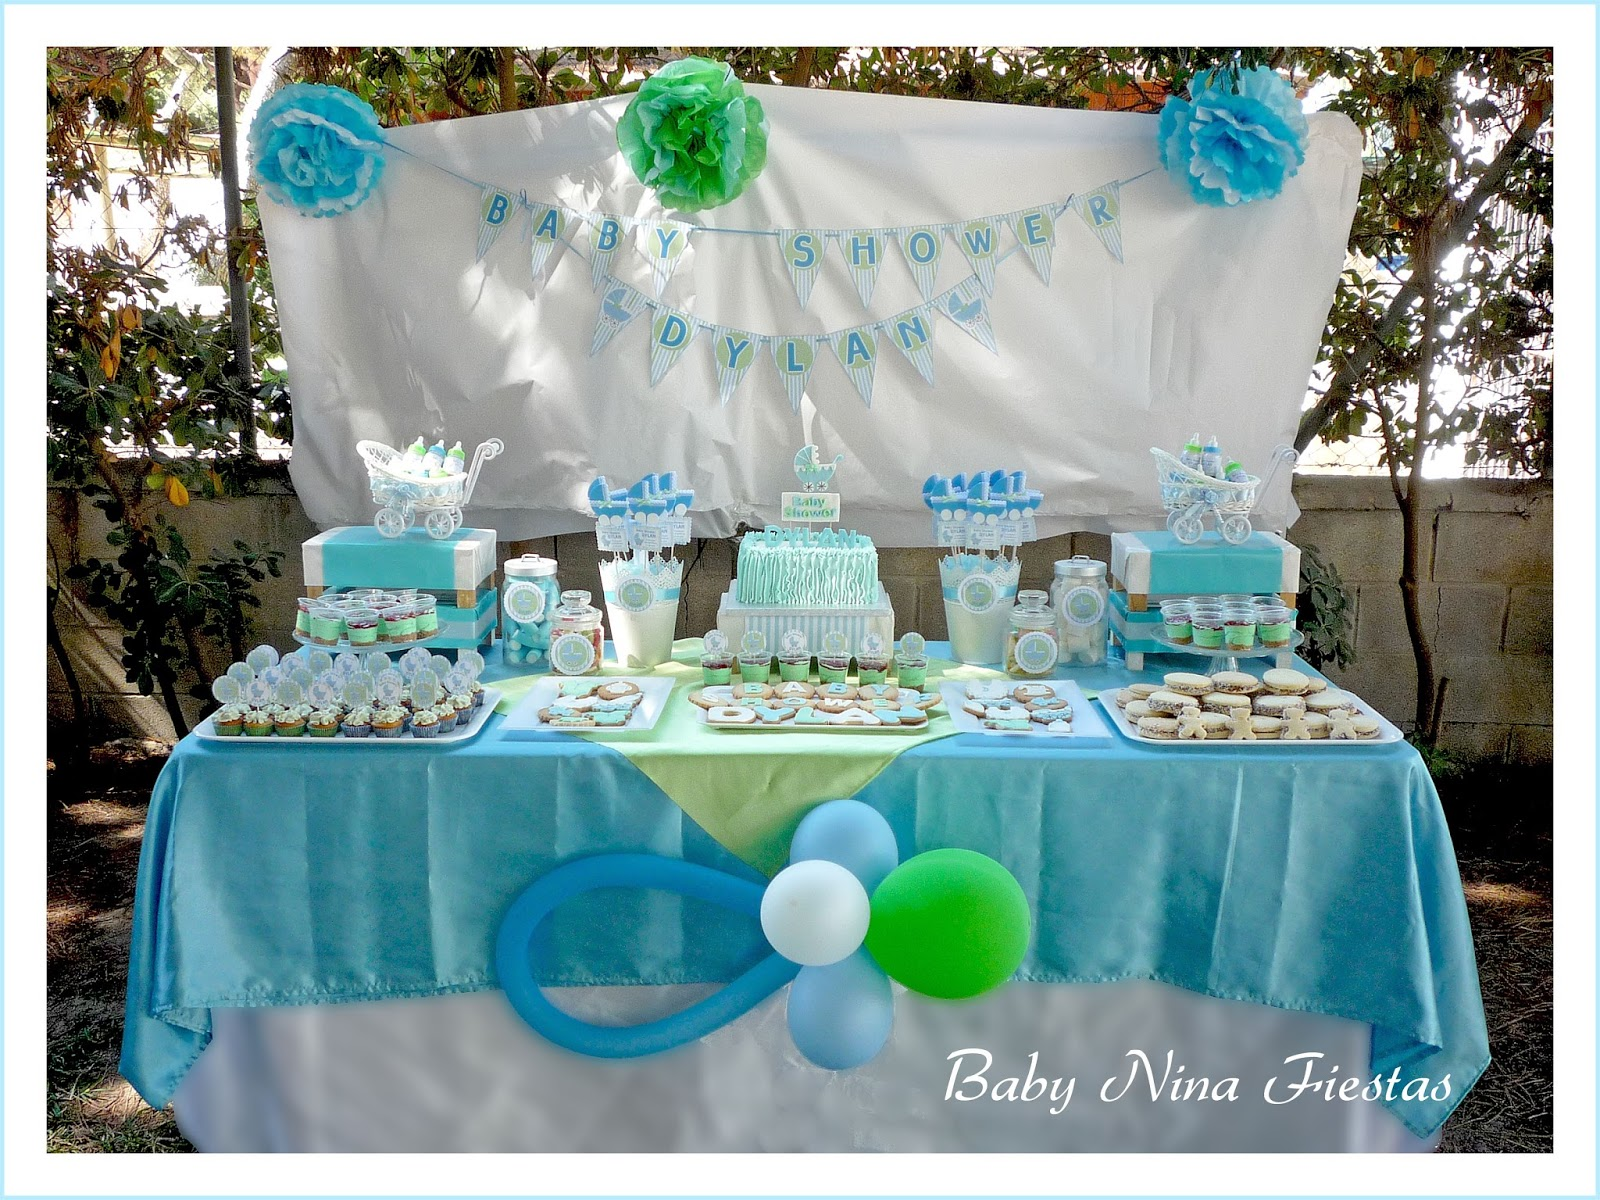 Fiesta baby shower nia excellent easy yet simples baby for Decoracion casa shower